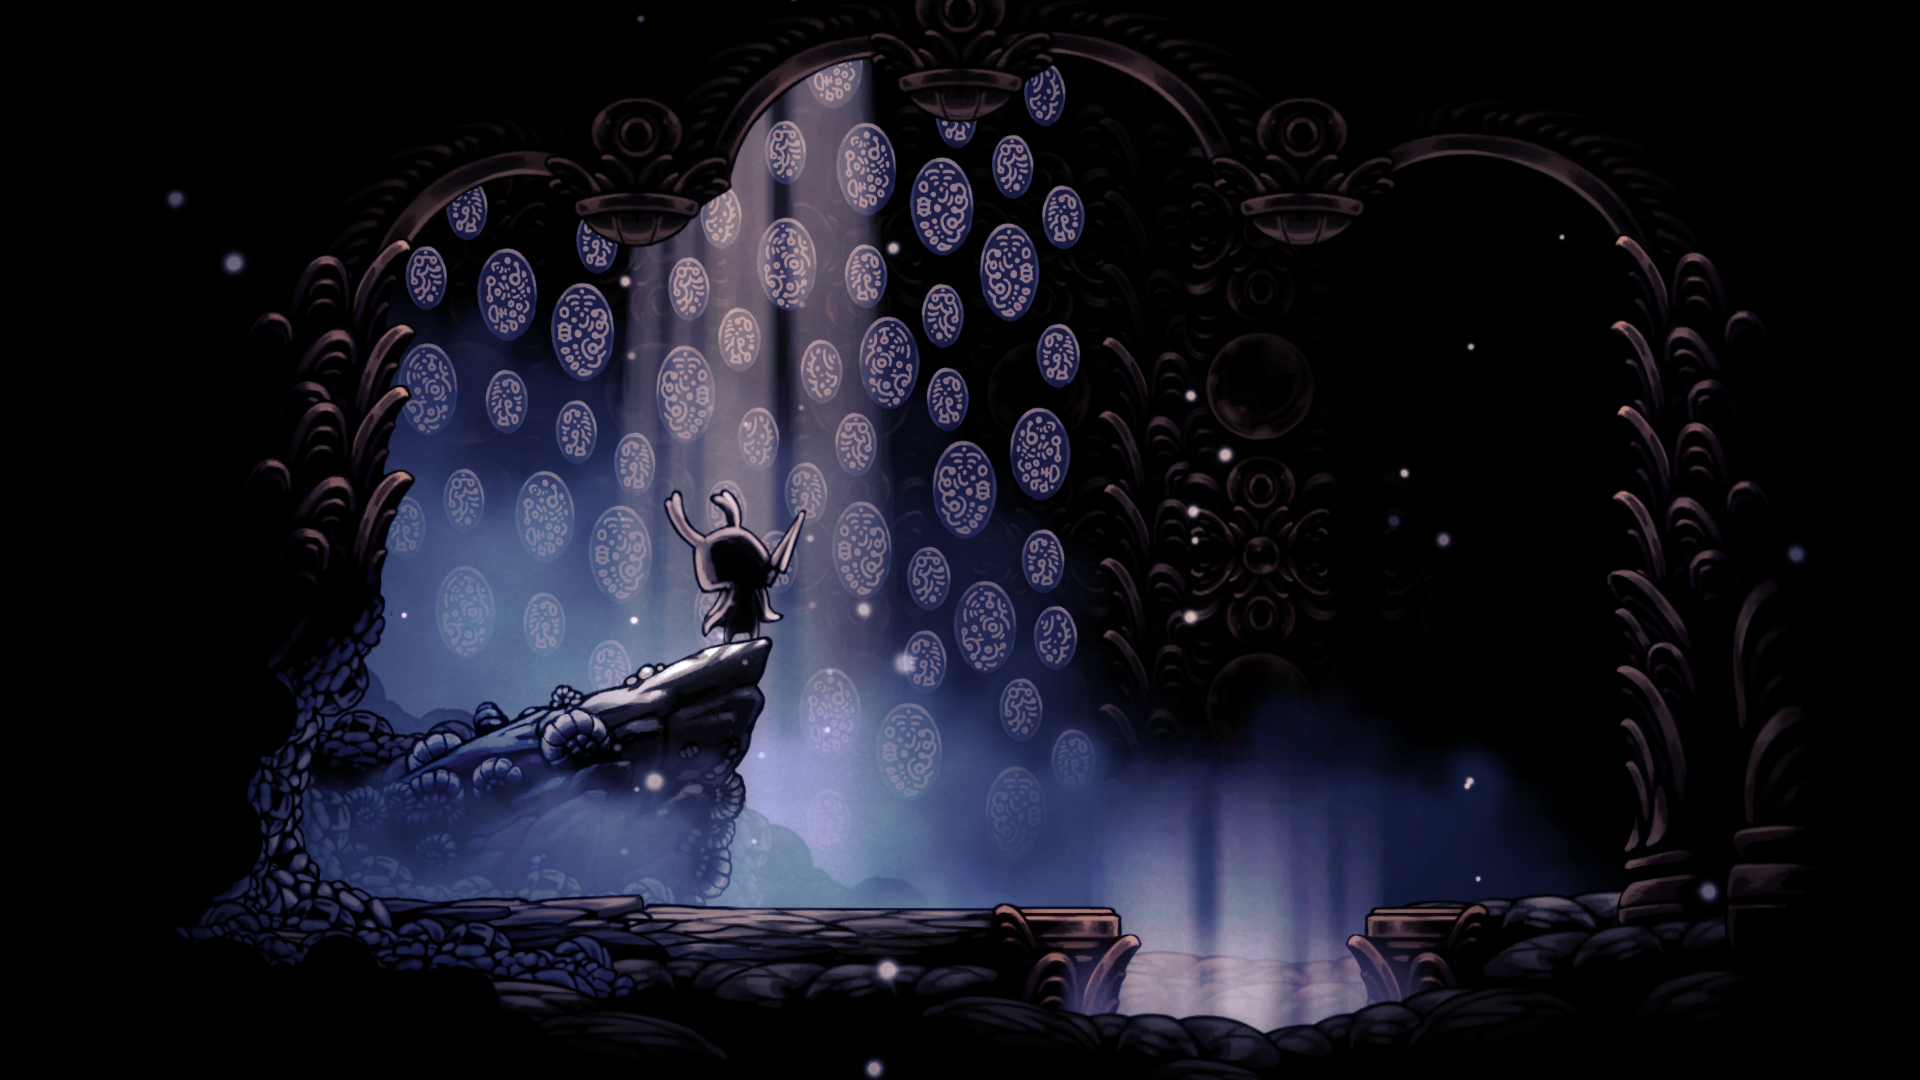 The Eternal Ordeal Hollow Knight Wiki Fandom Hollow knight, team cherry, indoors, clock, no people video game, hollow knight.